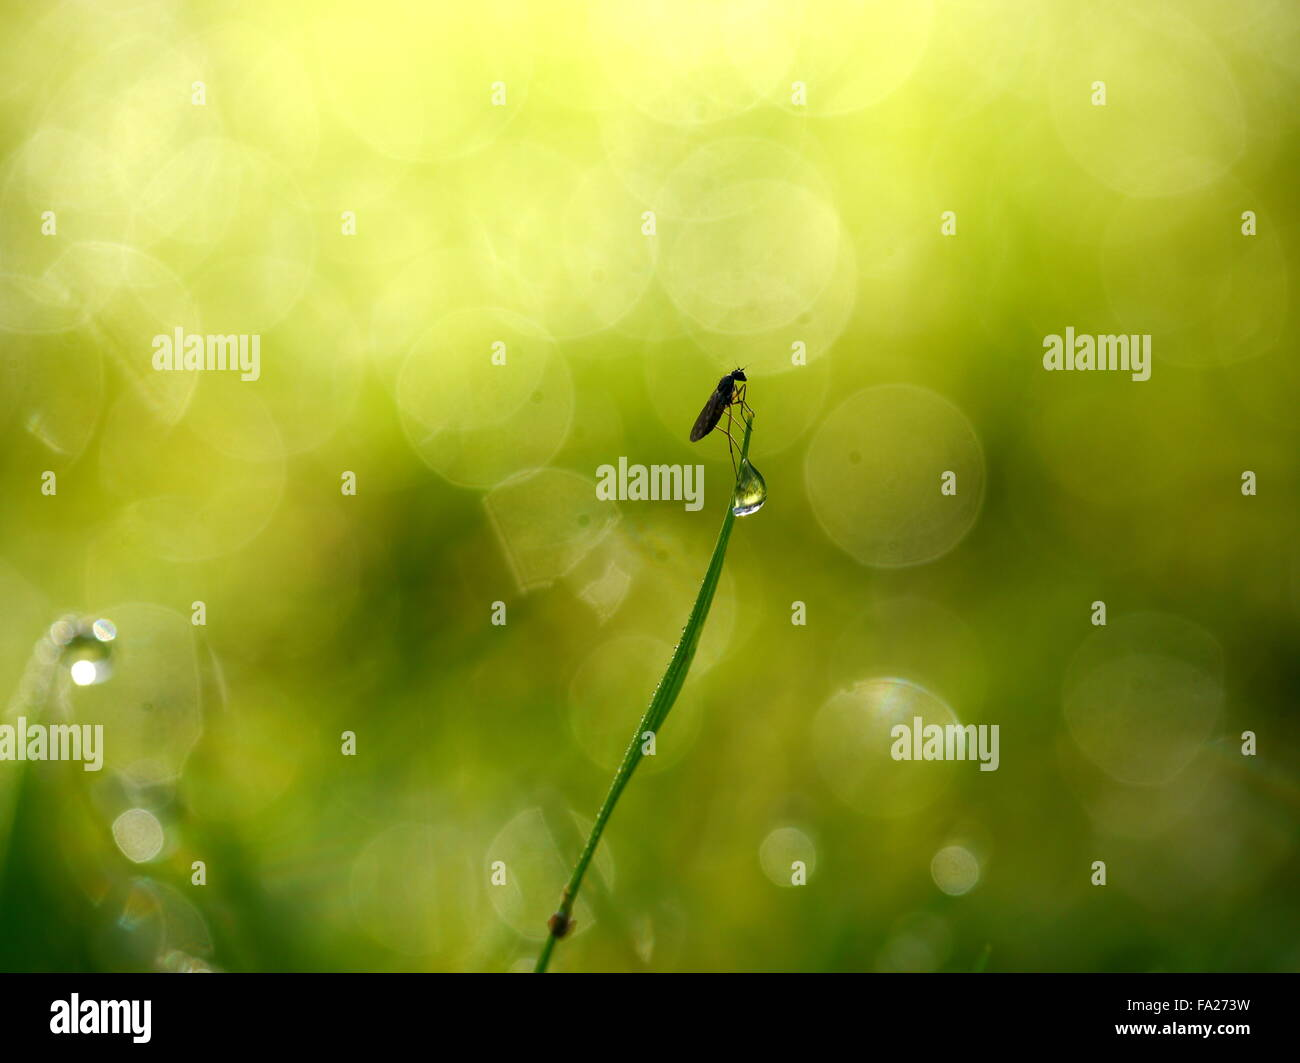 Midge on a dewy blade of grass - Stock Image